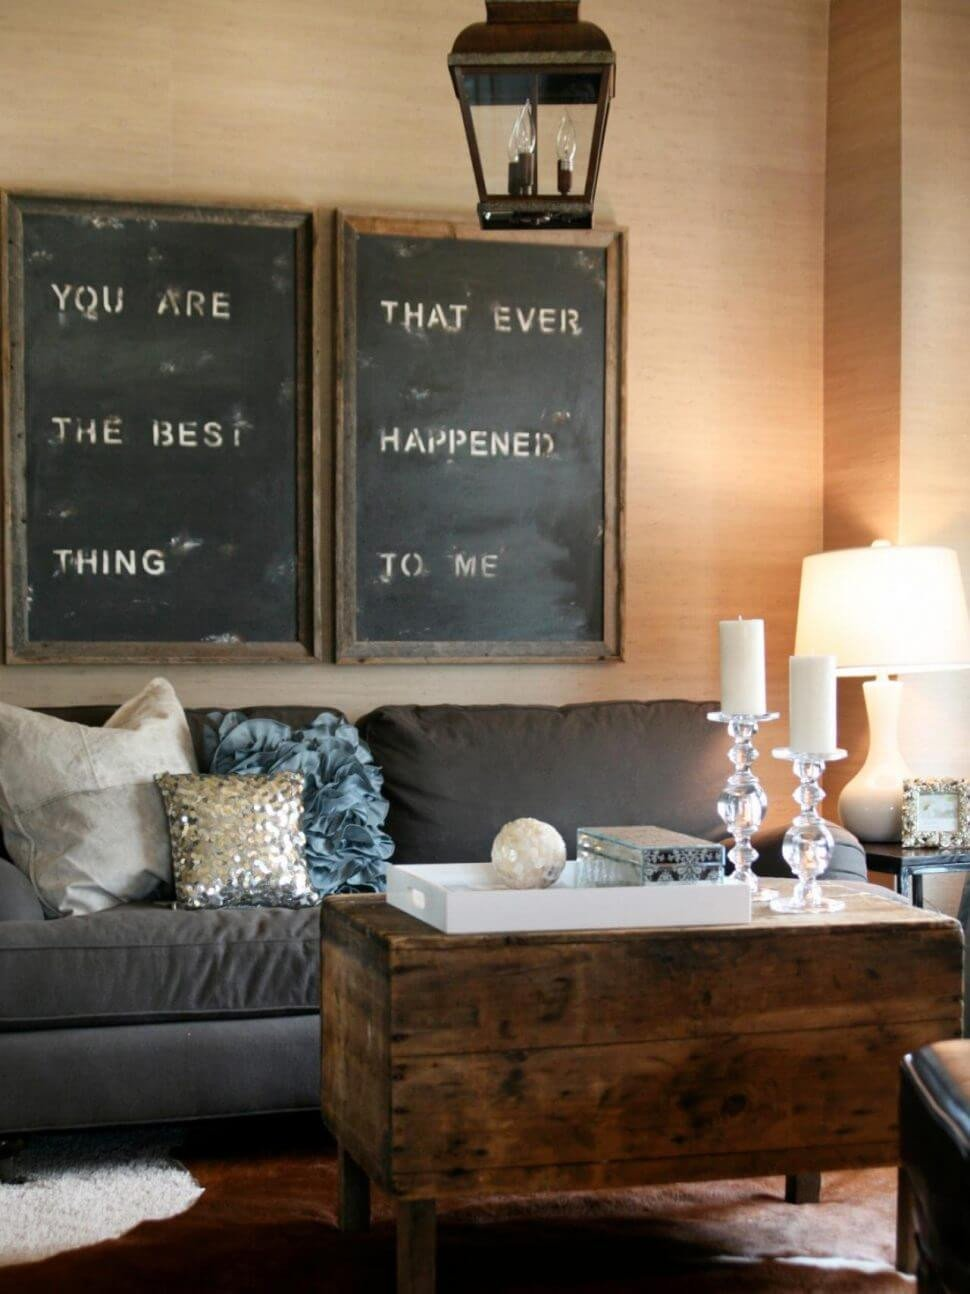 Rustic Living Room Wall Decor Beautiful 33 Best Rustic Living Room Wall Decor Ideas and Designs